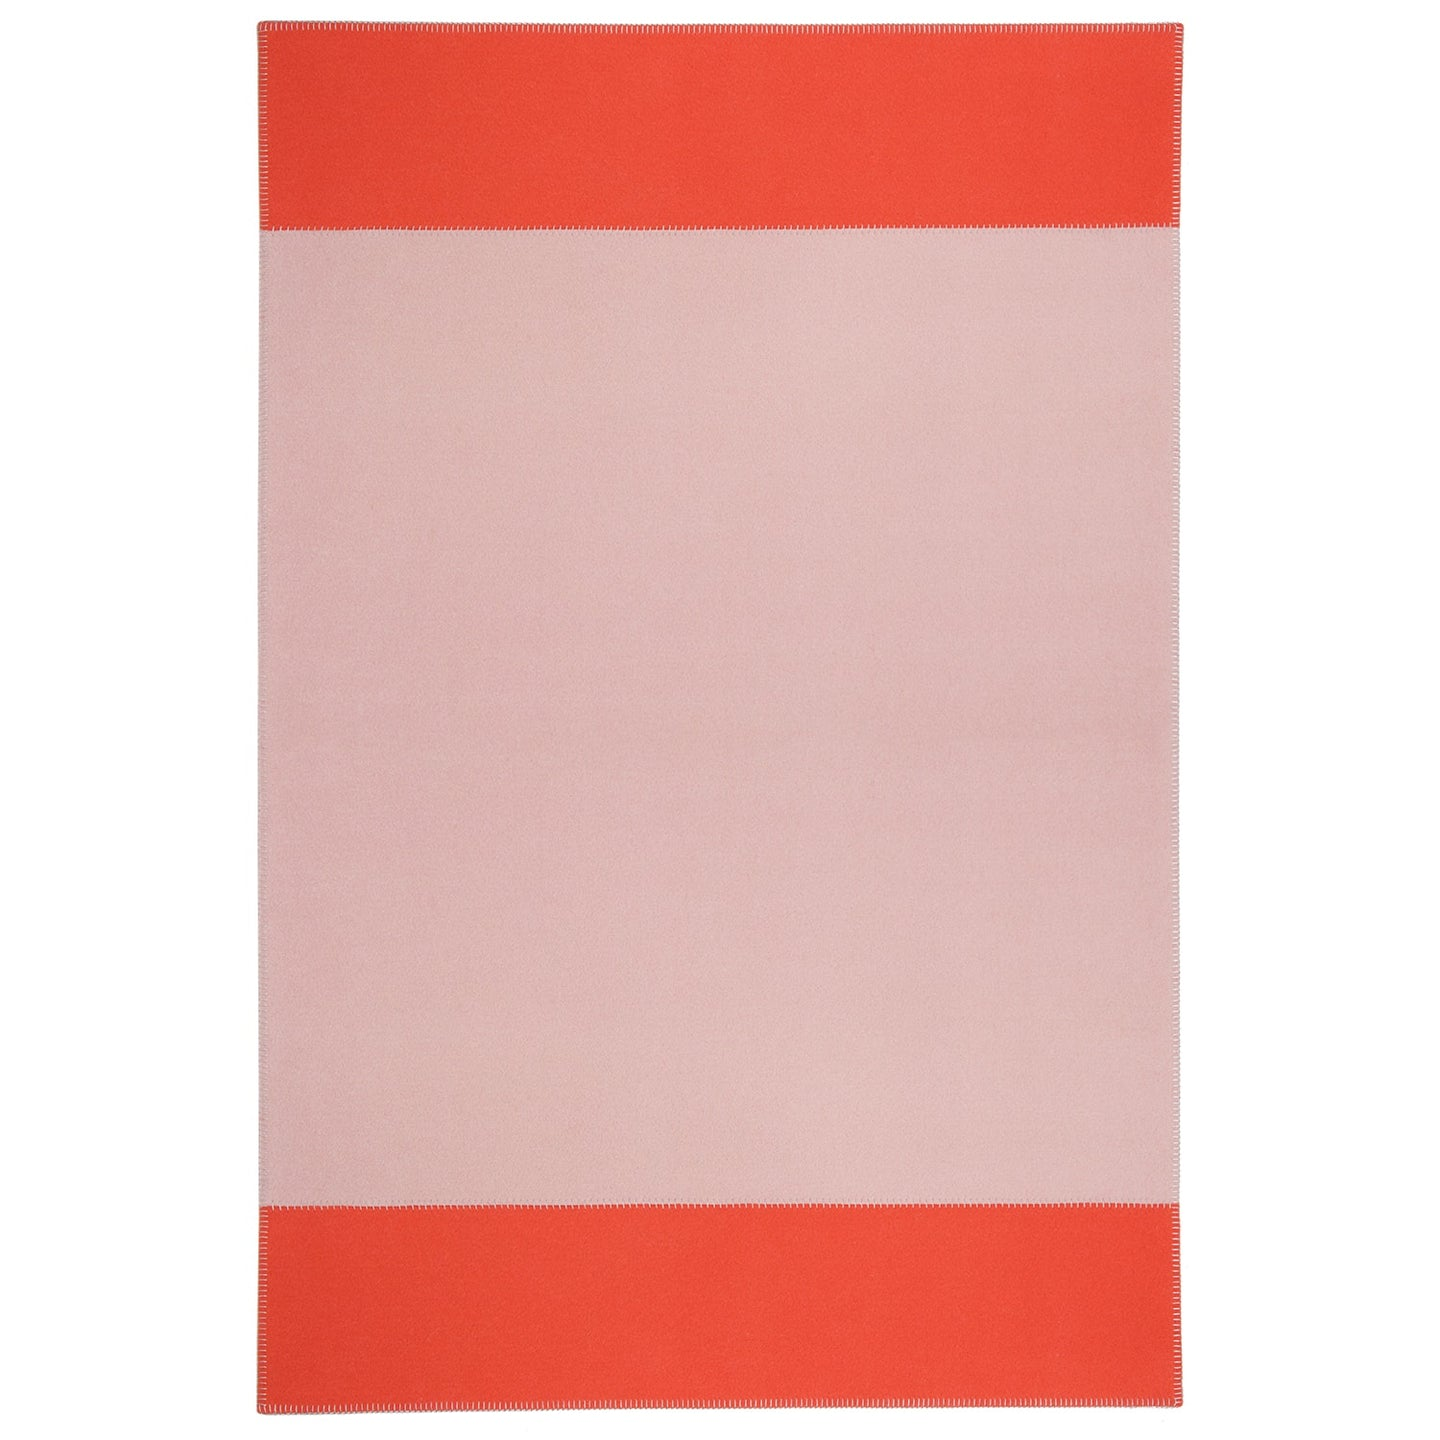 Hugh Tapis Rug, Blush & Coral rug by Roger Oates for AUTHOR's collection of British-made luxury homeware